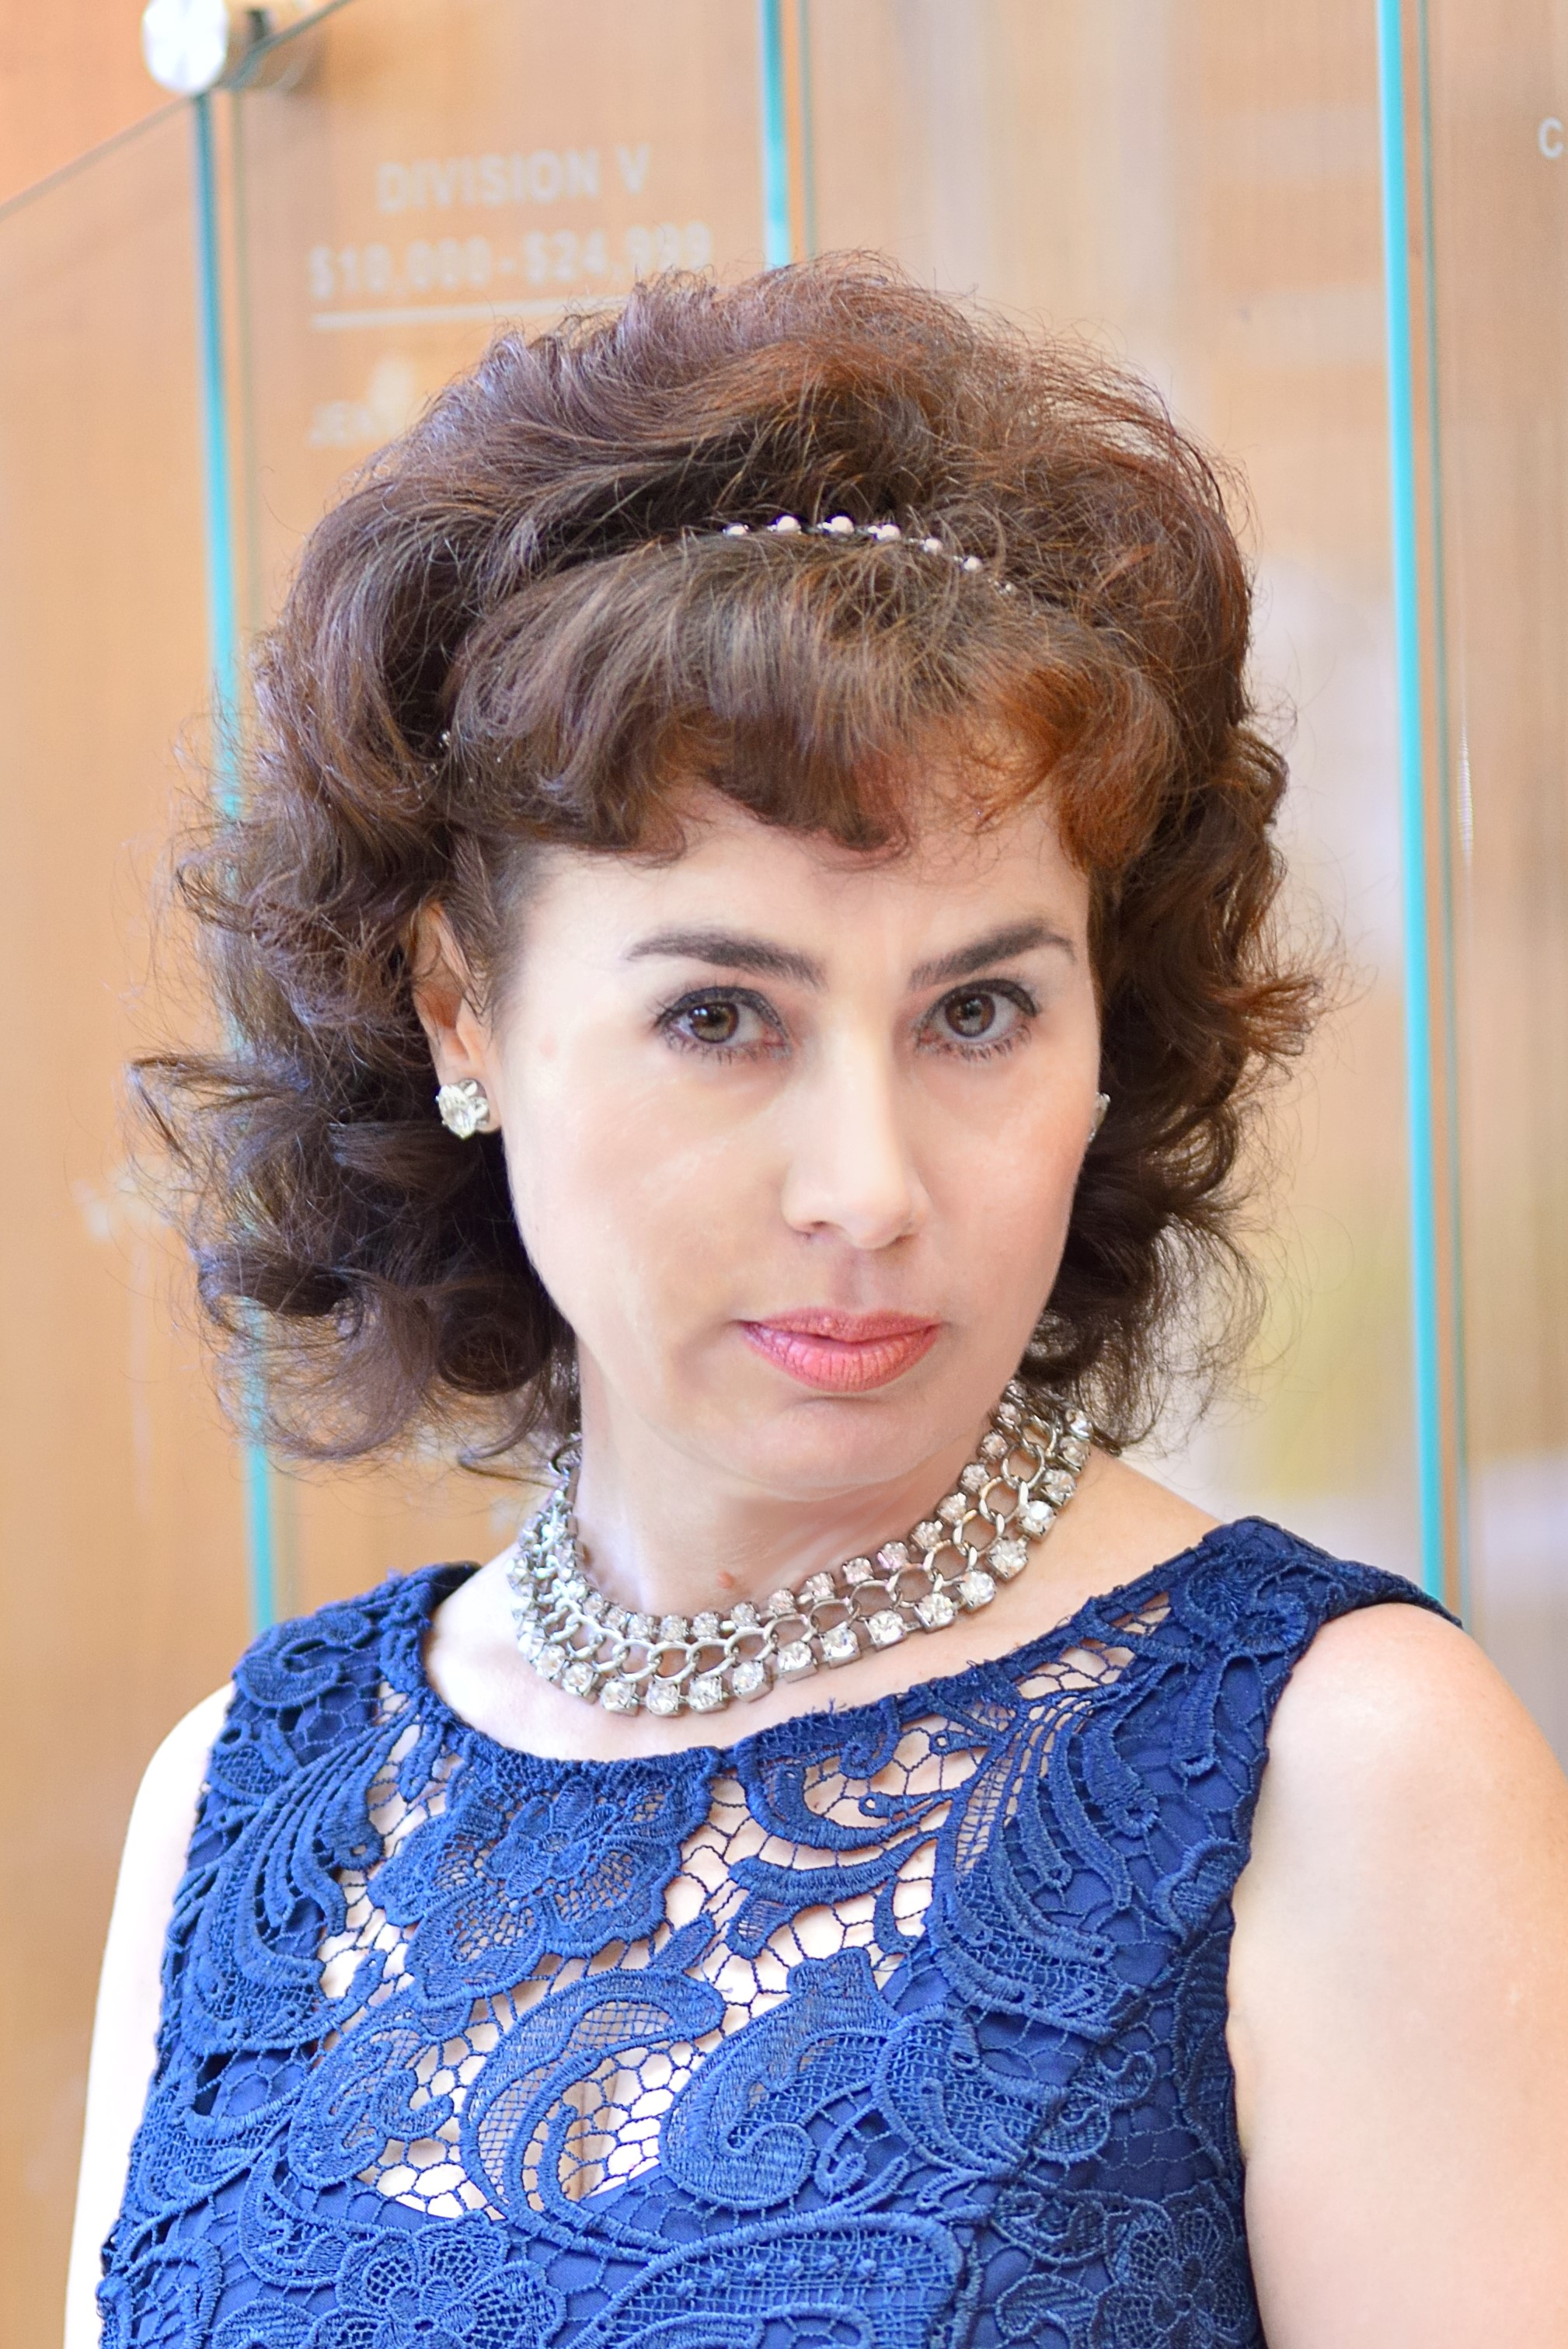 SUZANNA PAVLOVSKY     CEO, FOUNDER AND ARTISTIC DIRECTOR